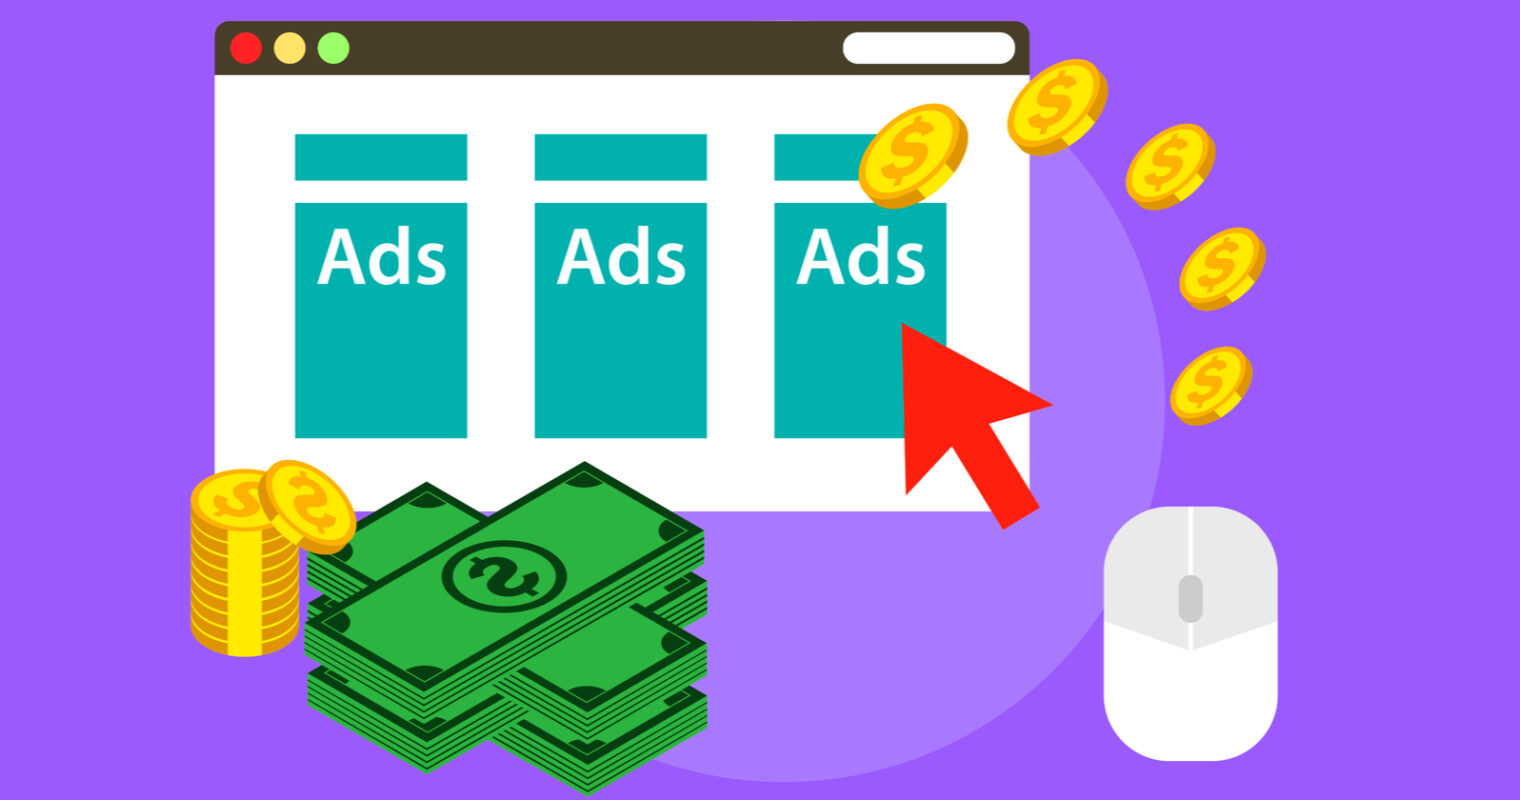 Google Ads Is Not For Small Business Anymore. Here's Why.